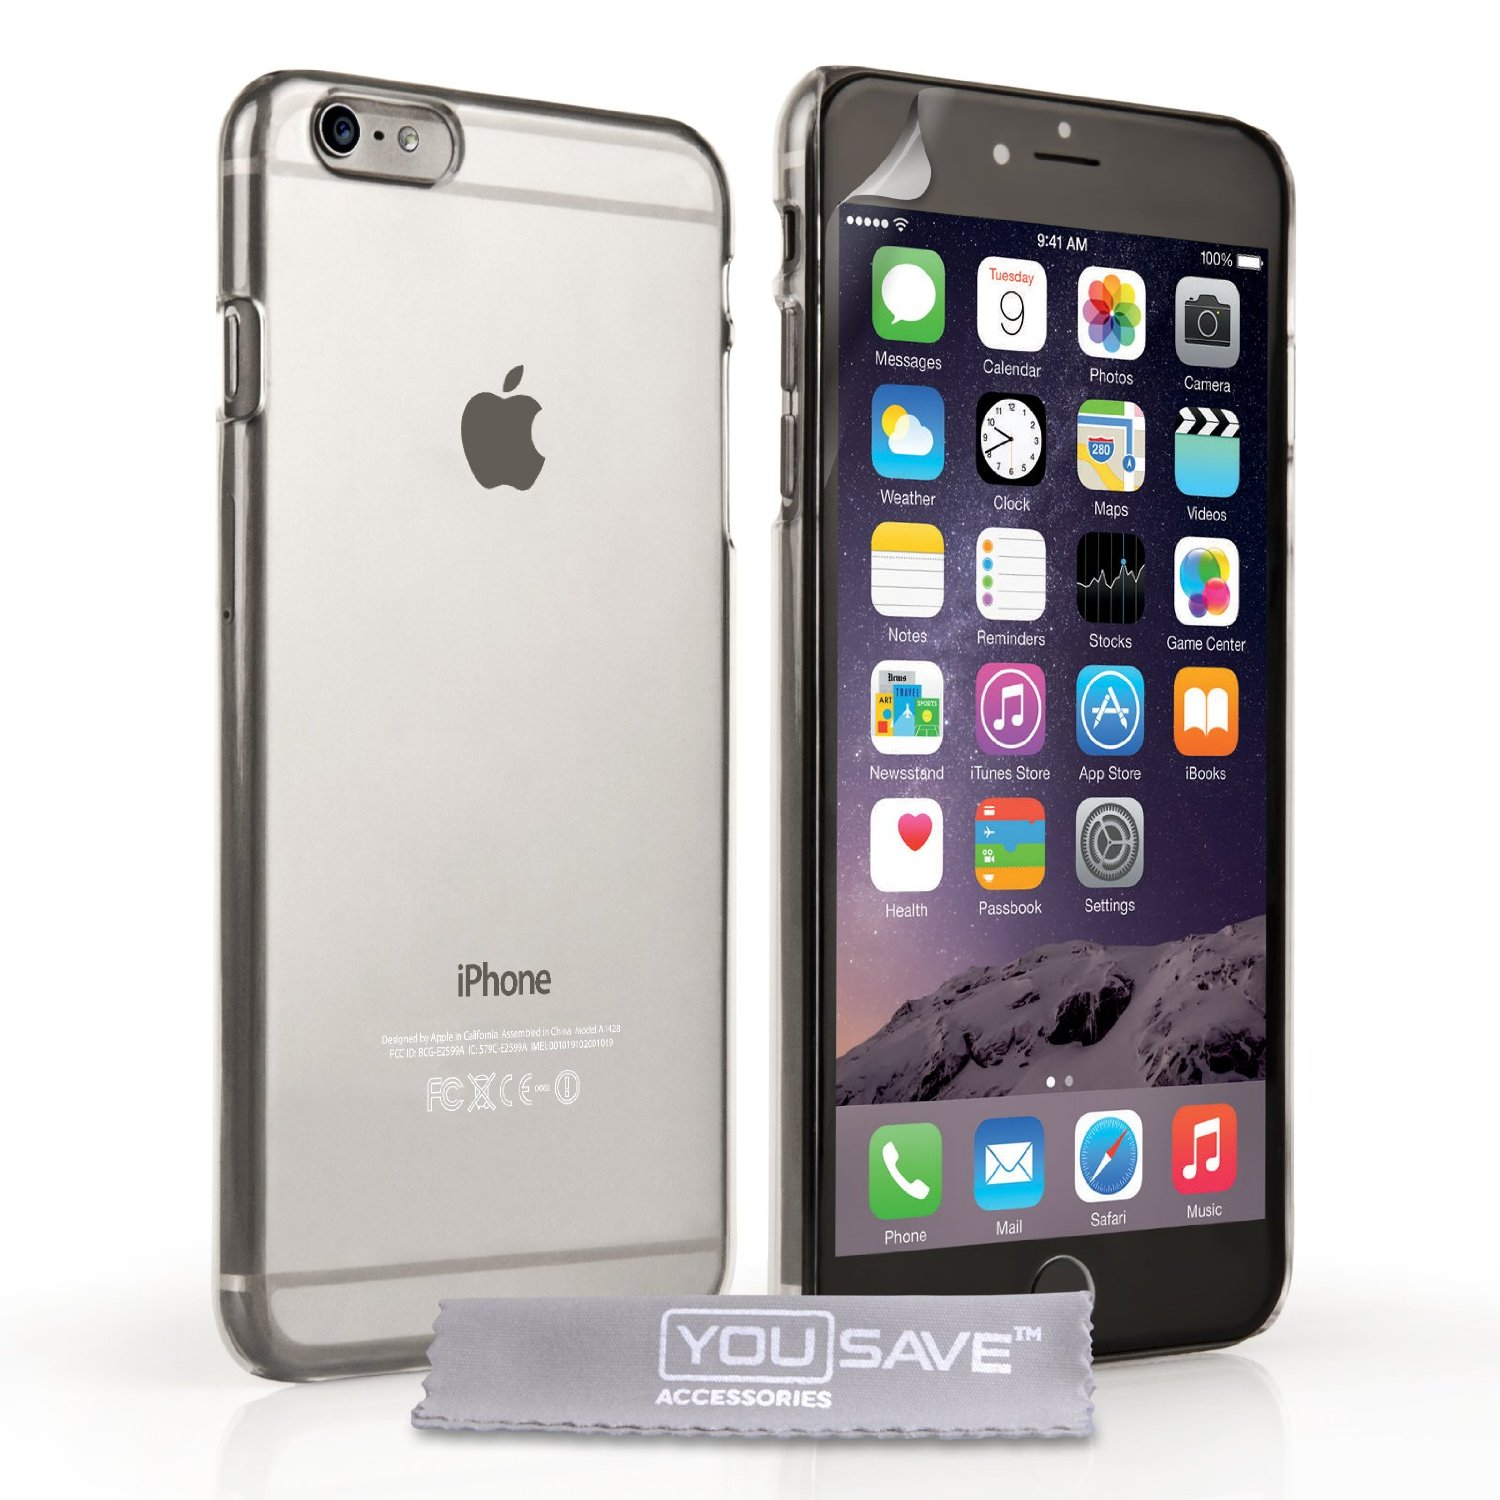 YouSave Accessories iPhone 6 Plus and 6s Plus Crystal Clear Hard Case